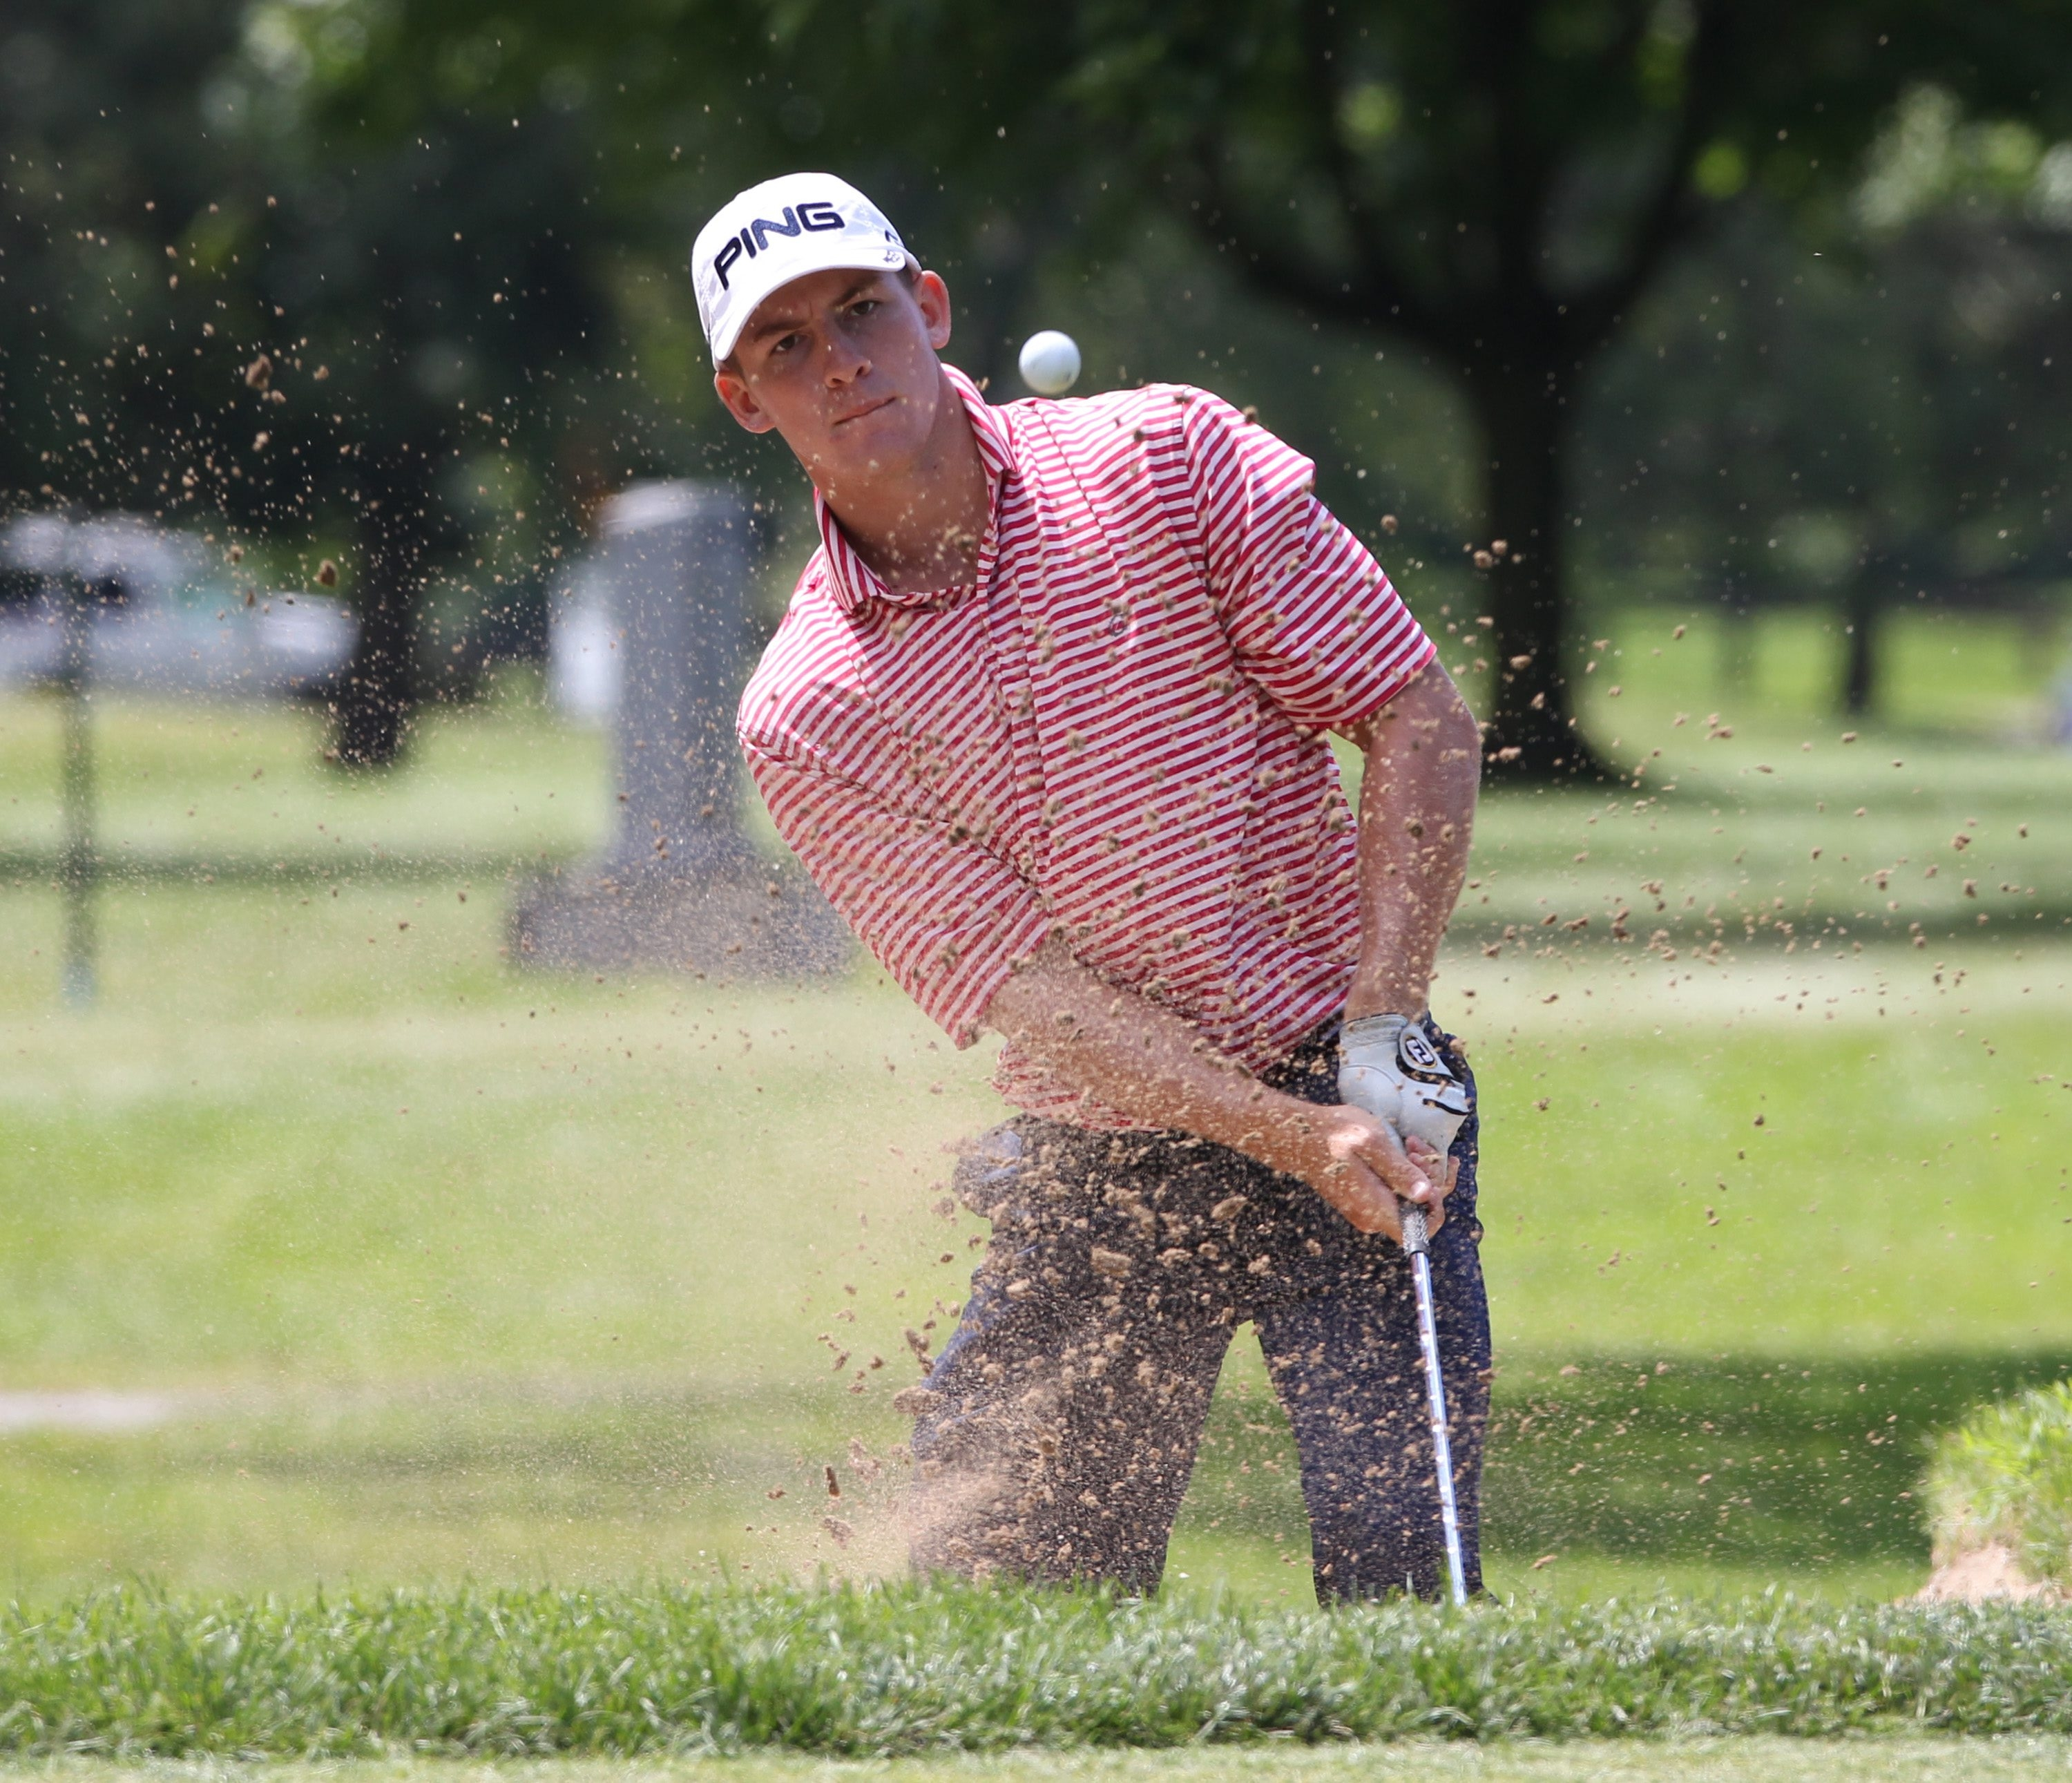 Tyler Dunlap hits out of the sand on the 11th hole en route to a birdie during the second round at Niagara Falls Country Club.